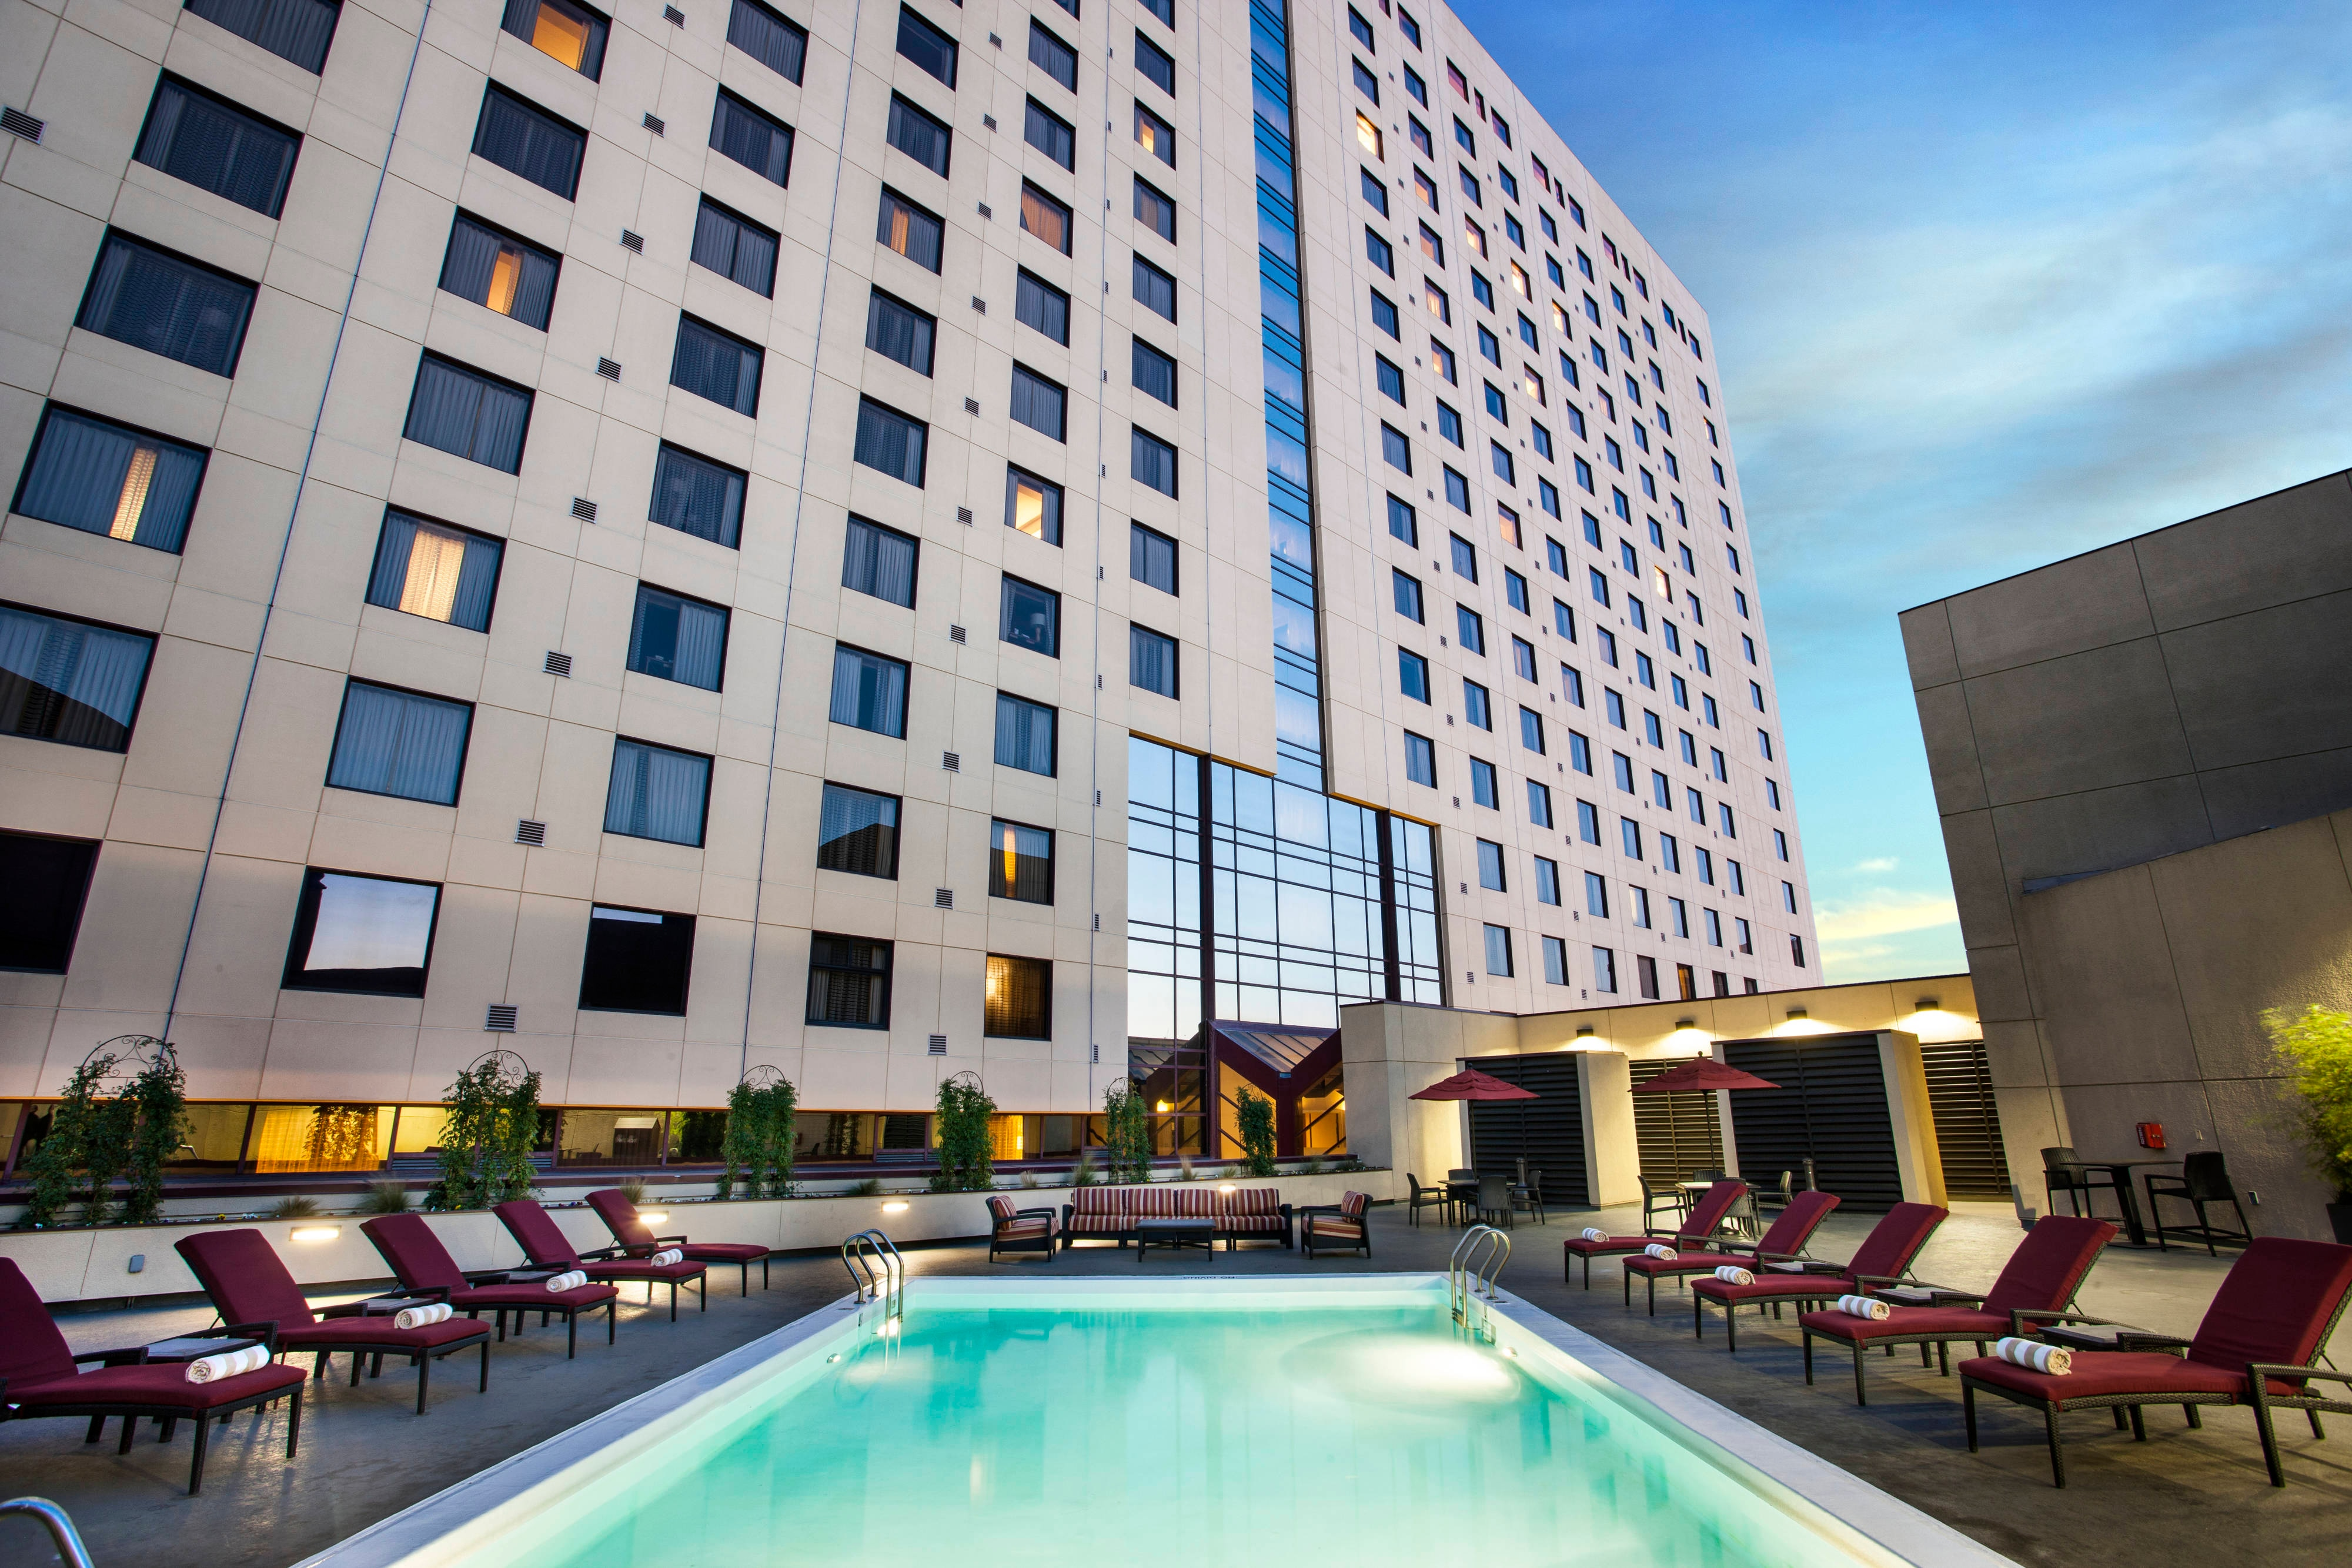 Oakland Hotel Heated Outdoor Pool